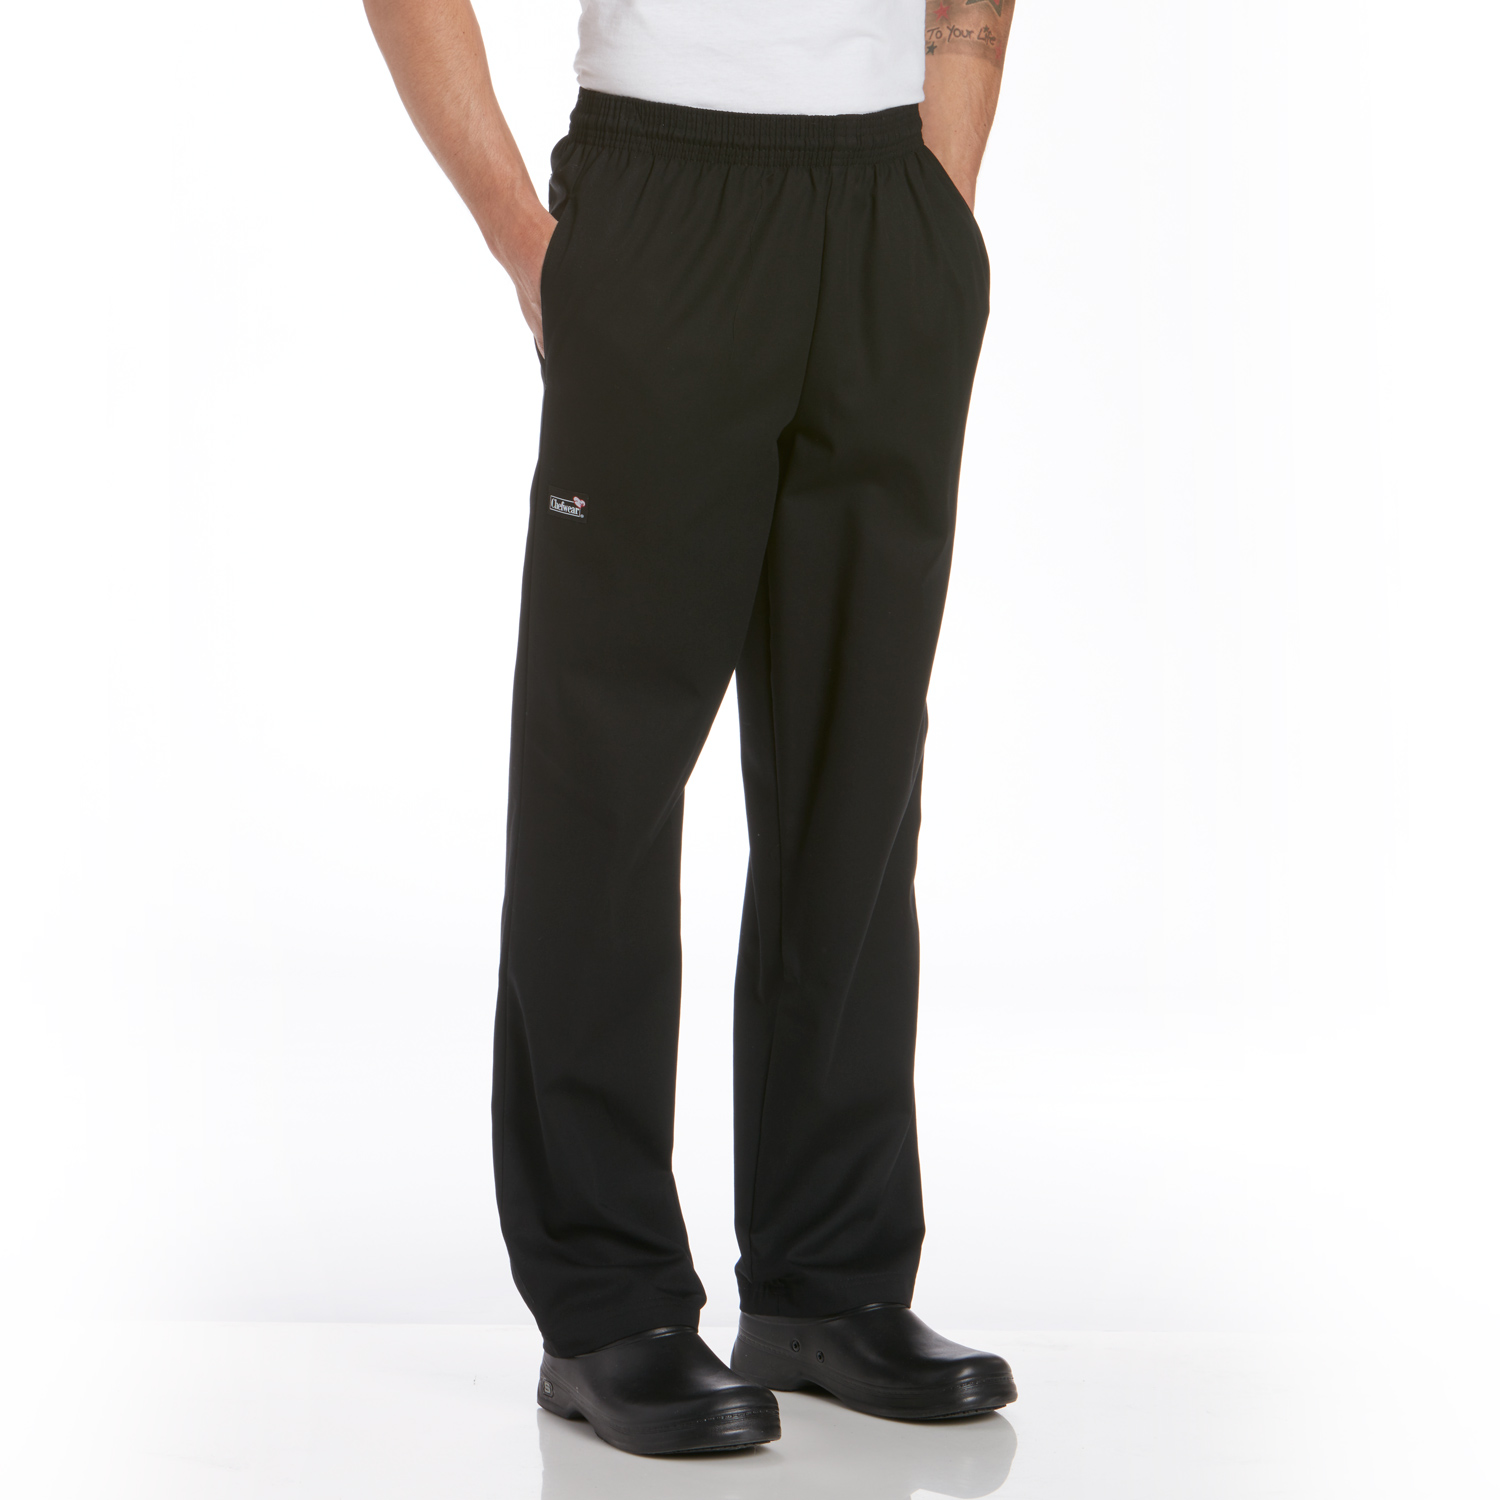 Best Seller - Chefwear (Chef Wear) Ultimate Cotton Blend Chef Pants (3700)